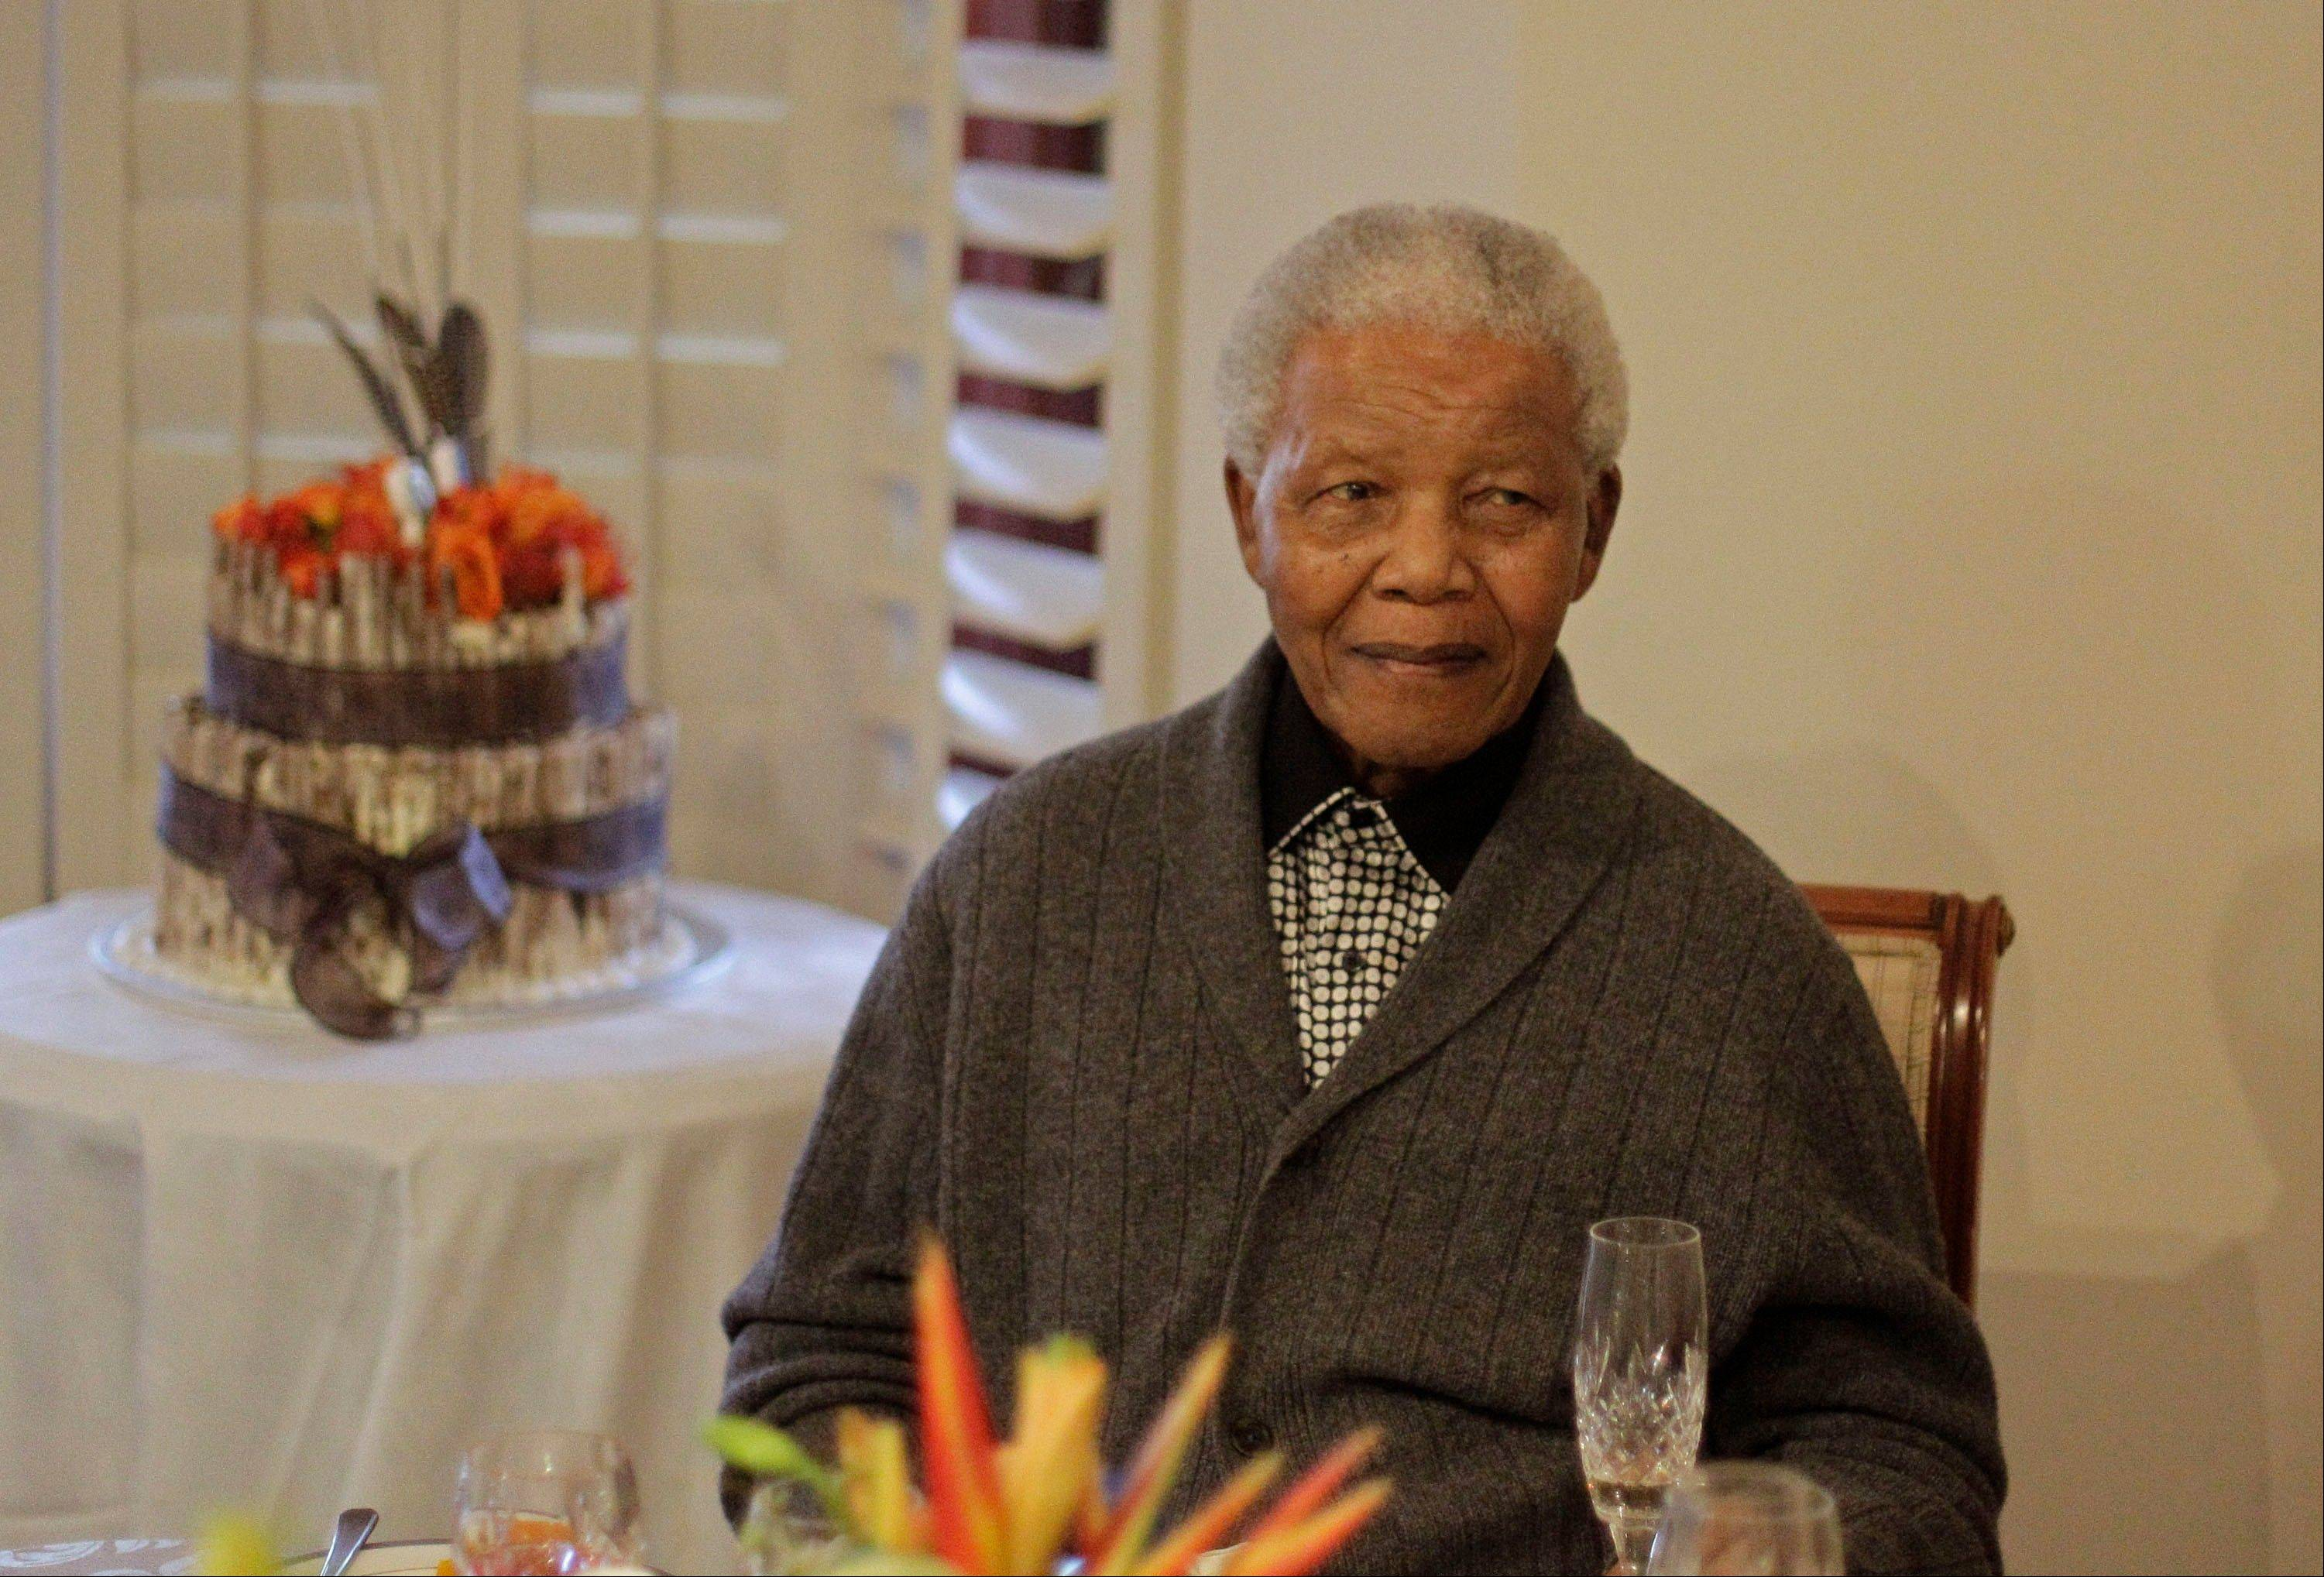 In this Wednesday, July 18, 2012 file photo, former South African President Nelson Mandela as he celebrates his birthday with family in Qunu, South Africa.